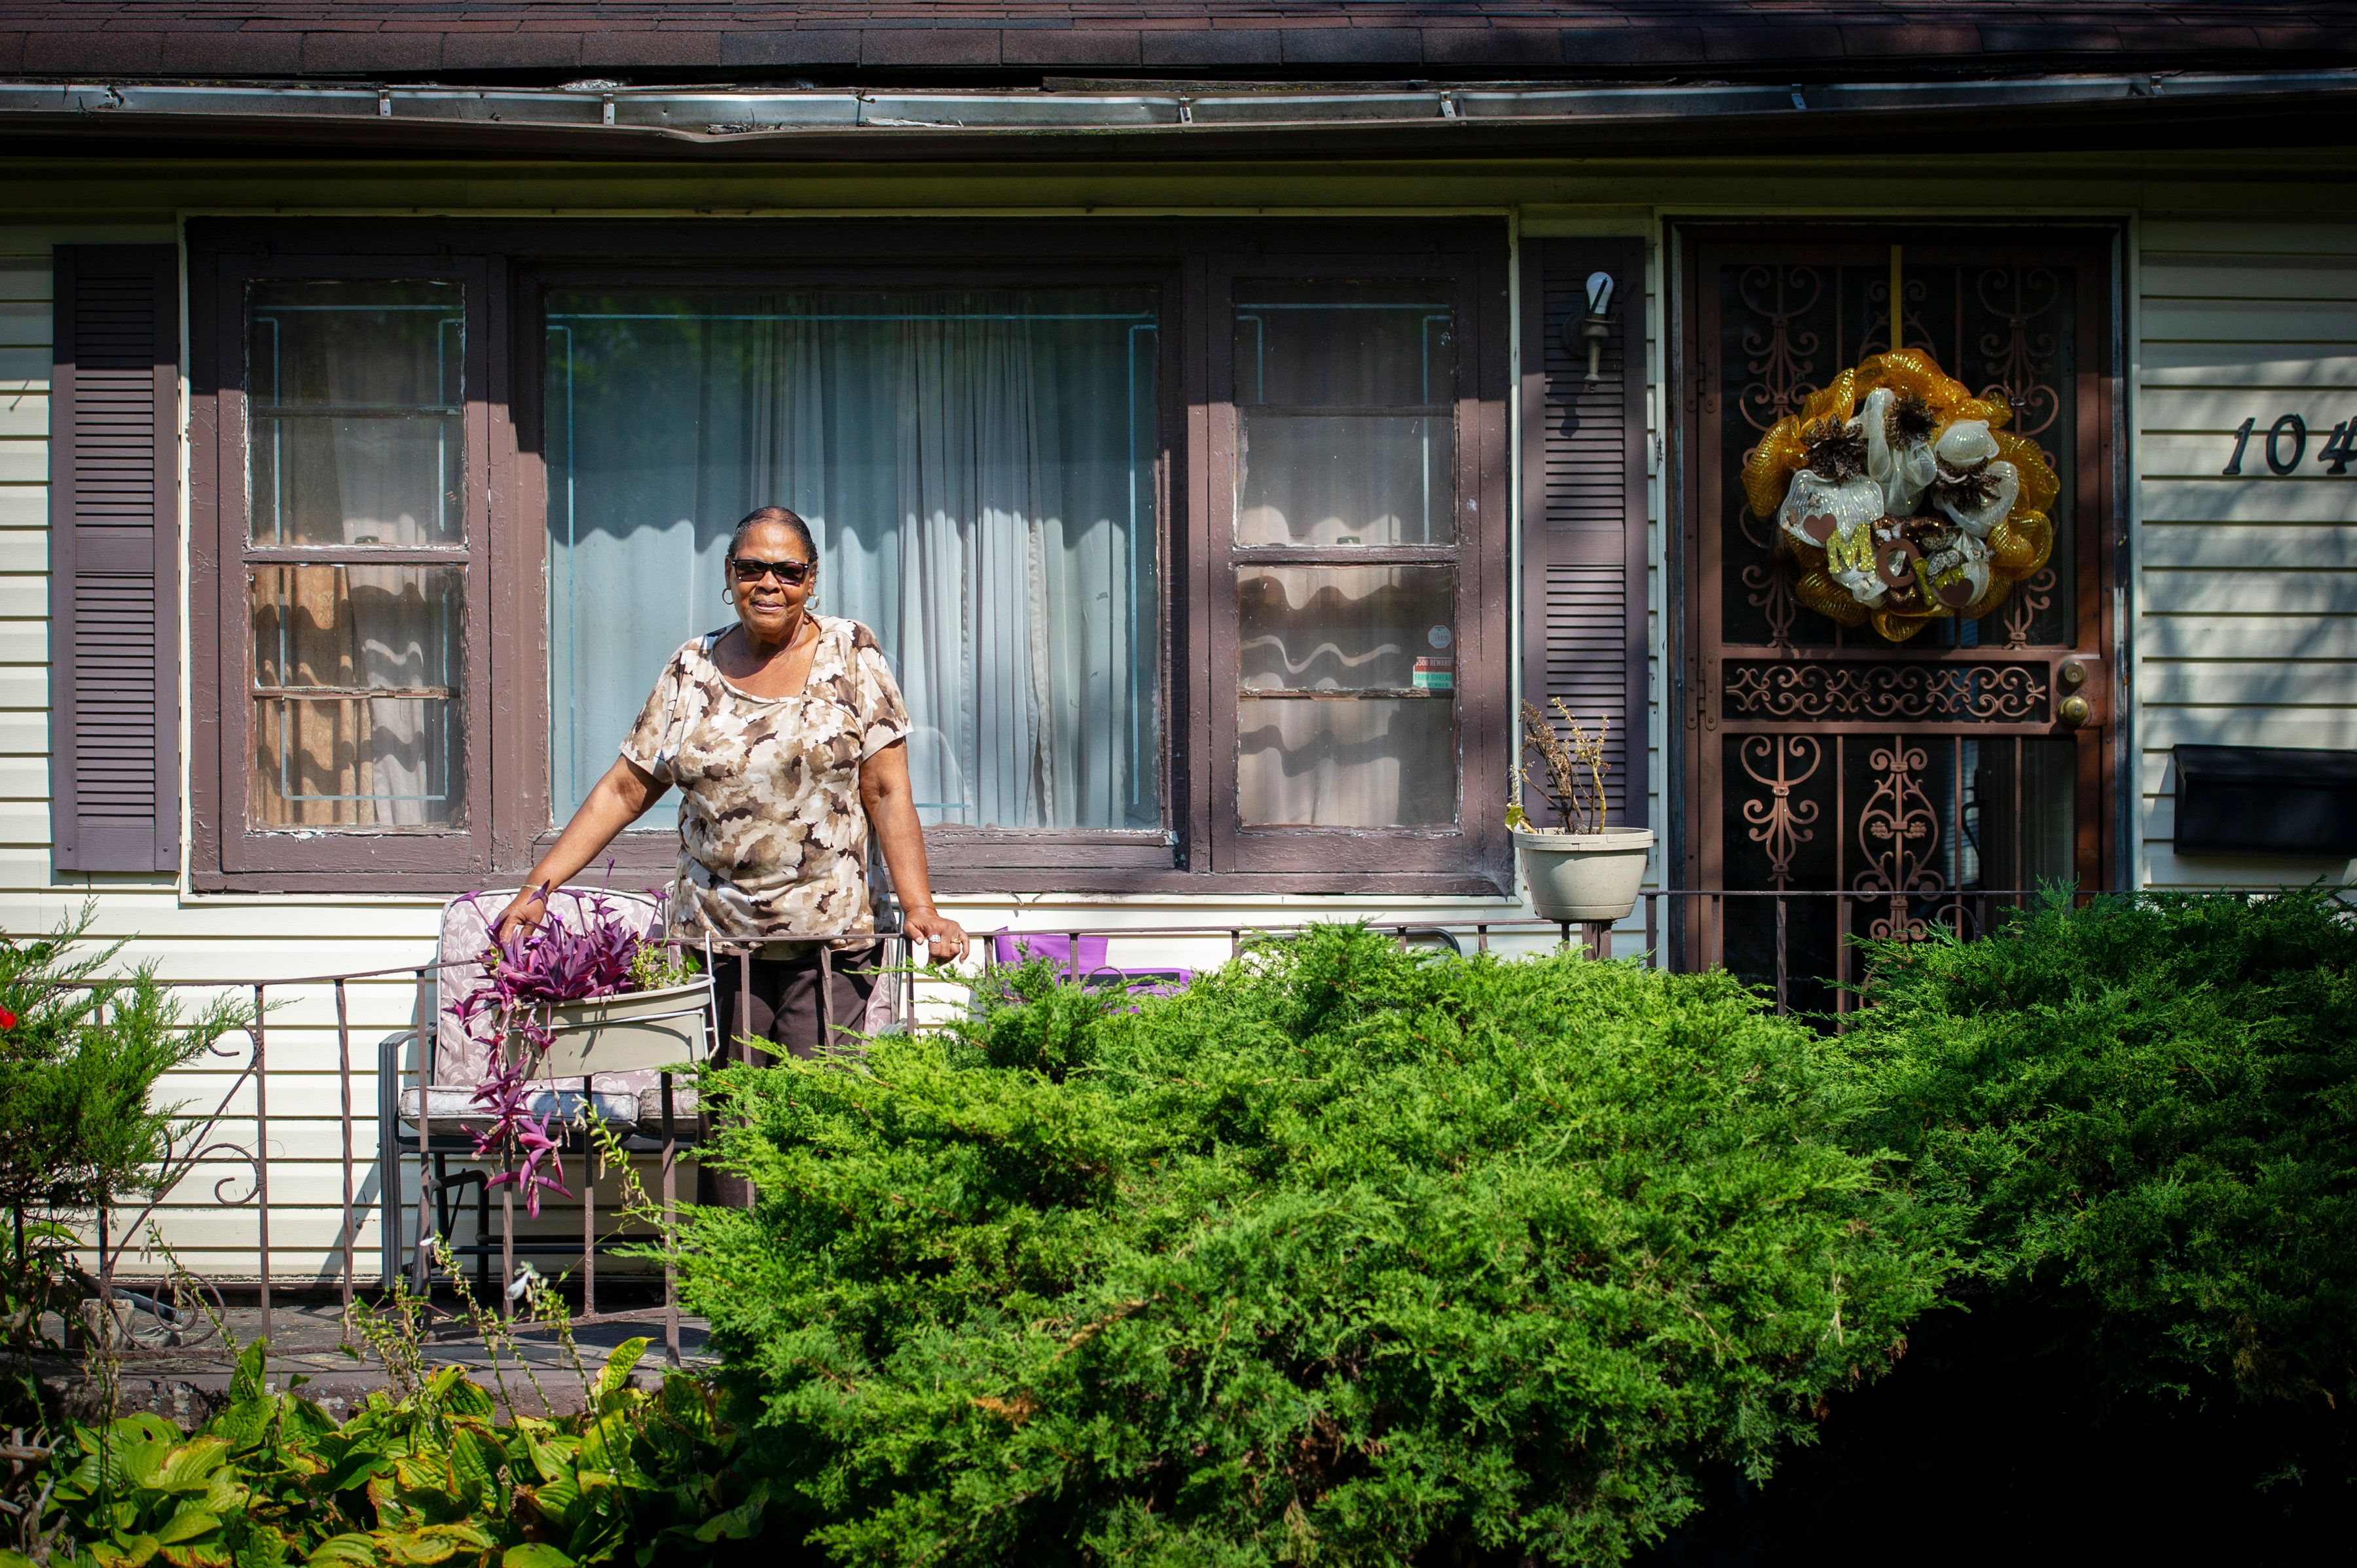 This Indiana City's Vacant Homes Show The Other Side Of The Housing Crisis